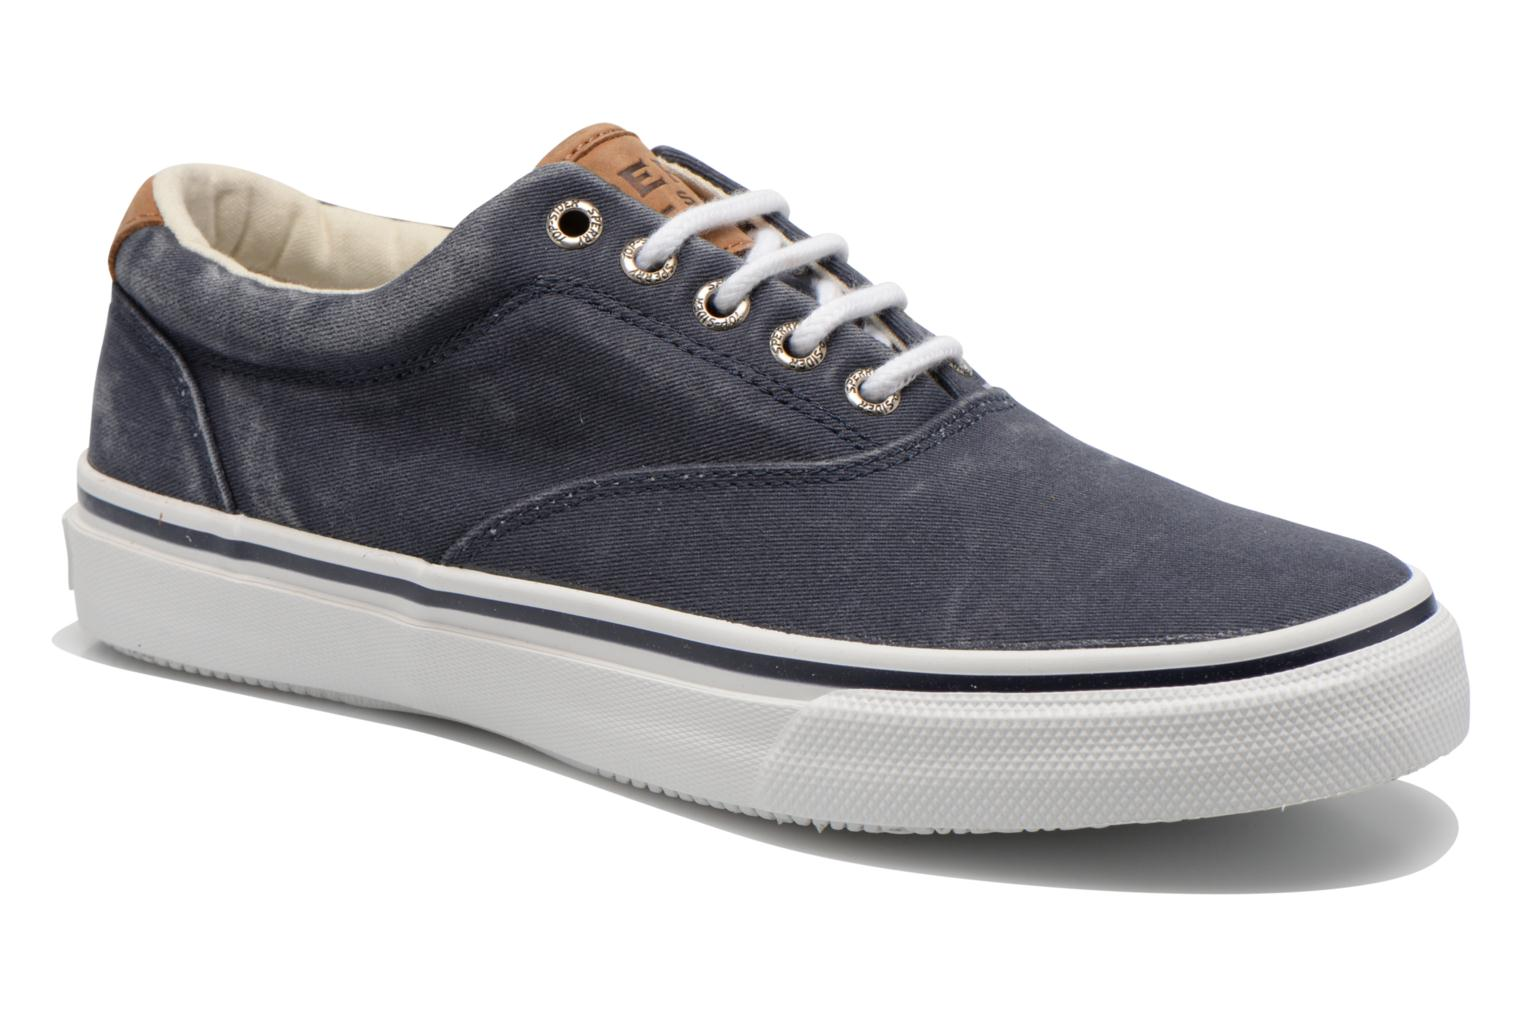 Sneakers Sperry Top-Sider Blauw